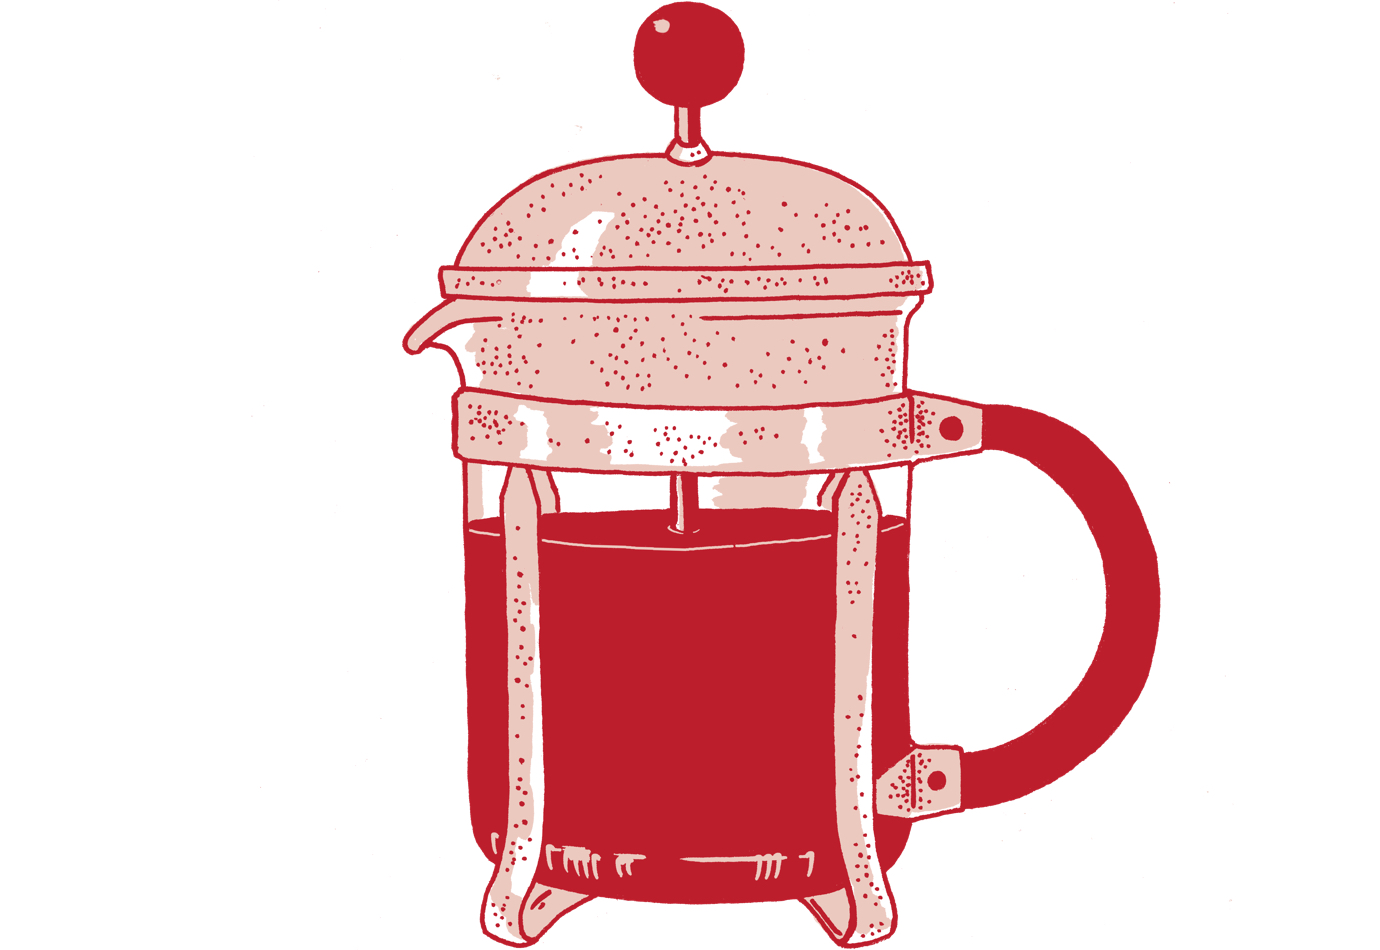 Brew French How To